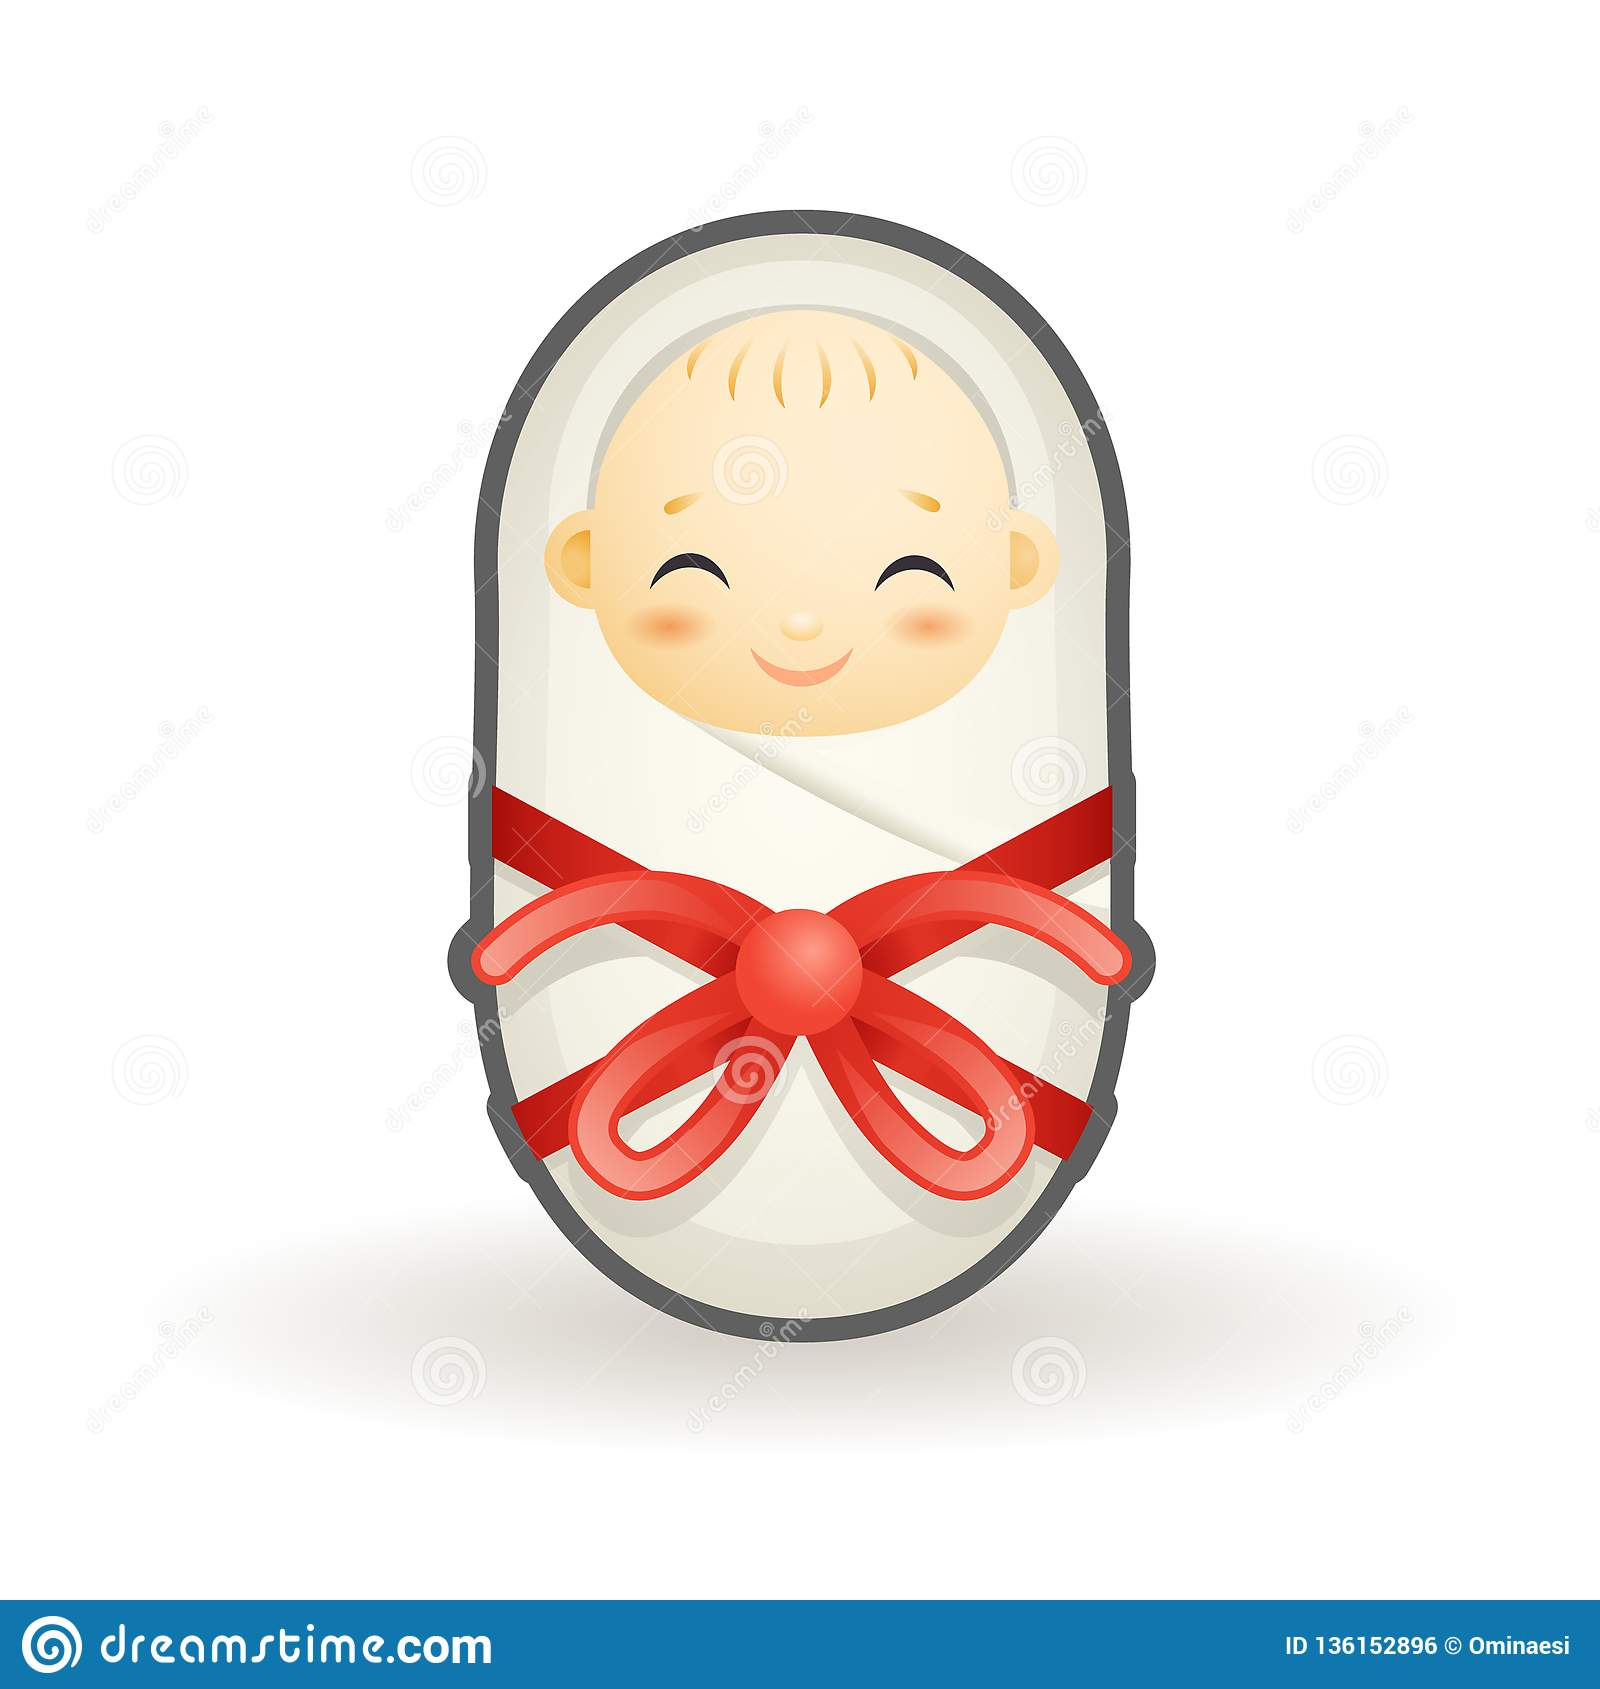 Swaddled Newborn Cute Smiling Happy Sleeping Baby Cartoon Design Vector Illustration Stock Vector Illustration Of Blanket Innocence 136152896